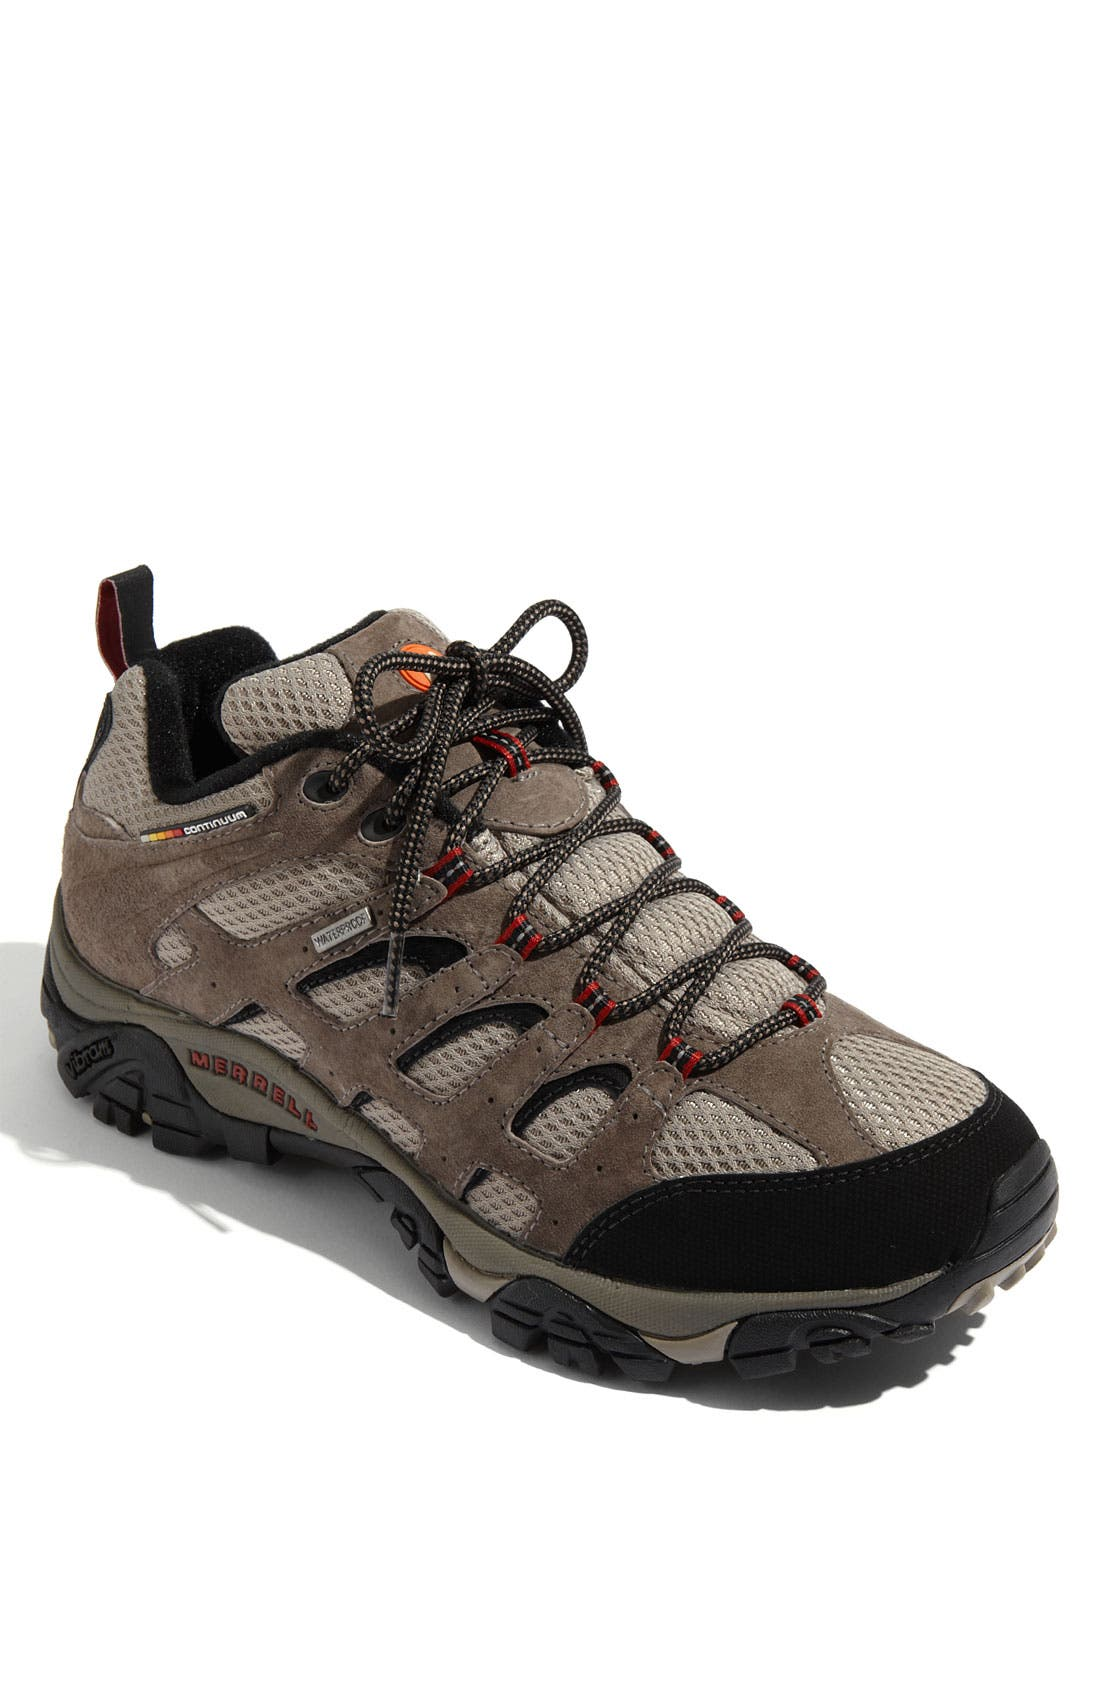 Alternate Image 1 Selected - Merrell 'Moab' Waterproof Hiking Shoe (Men)